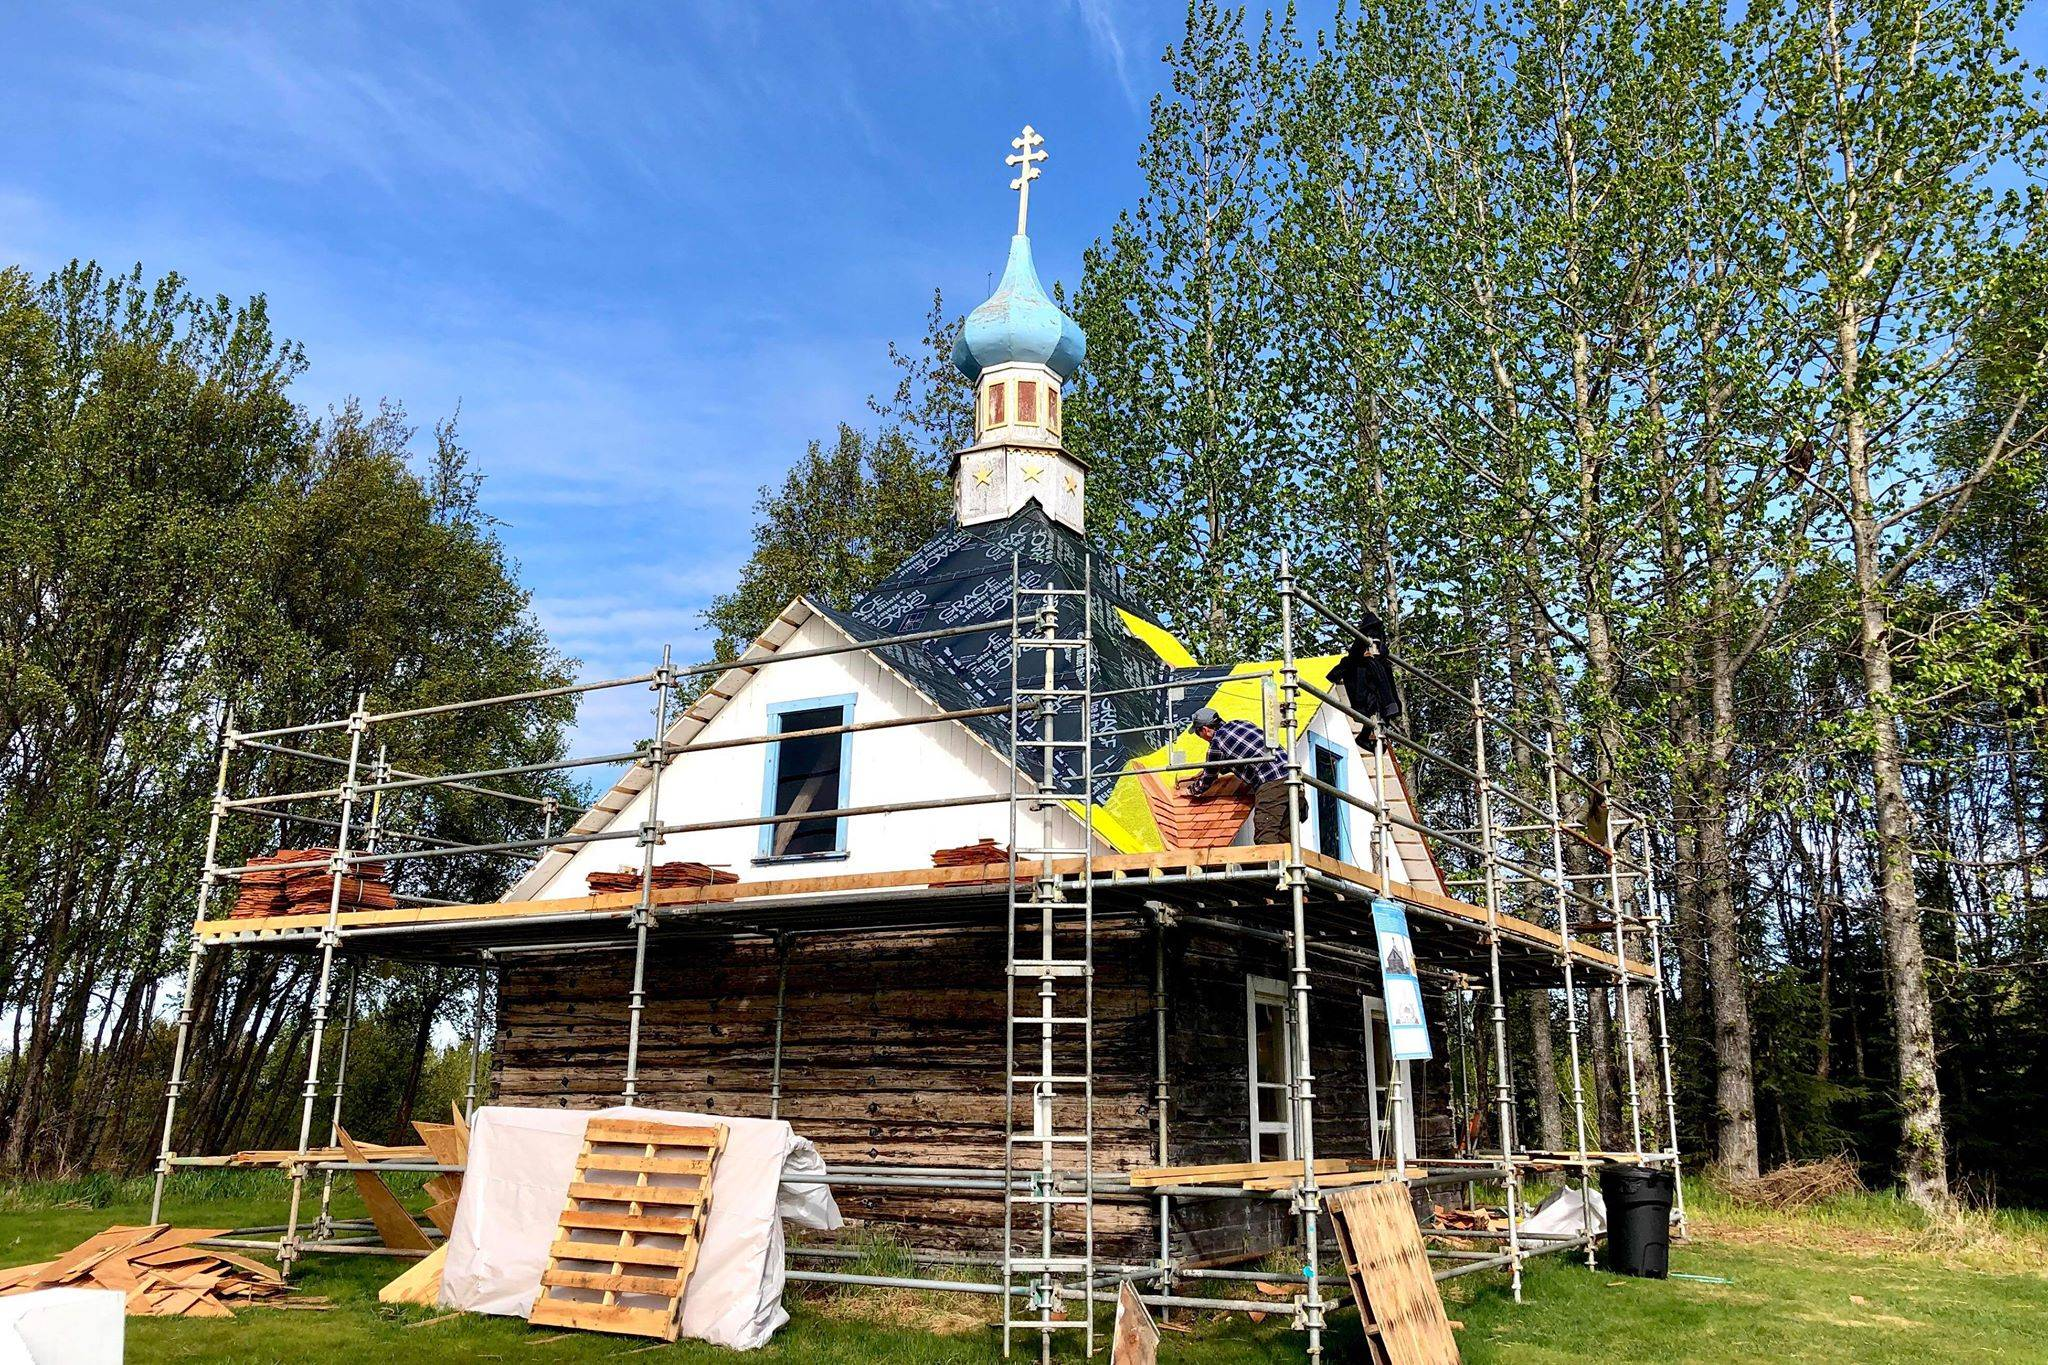 John Wachtel, a former National Parks Service employee, places new cedar shingles on the roof of the Saint Nicholas Memorial Chapel as part of new restorative efforts, on Tuesday, May 21, 2019, in Old Town Kenai, Alaska. (Photo by Victoria Petersen/Peninsula Clarion)